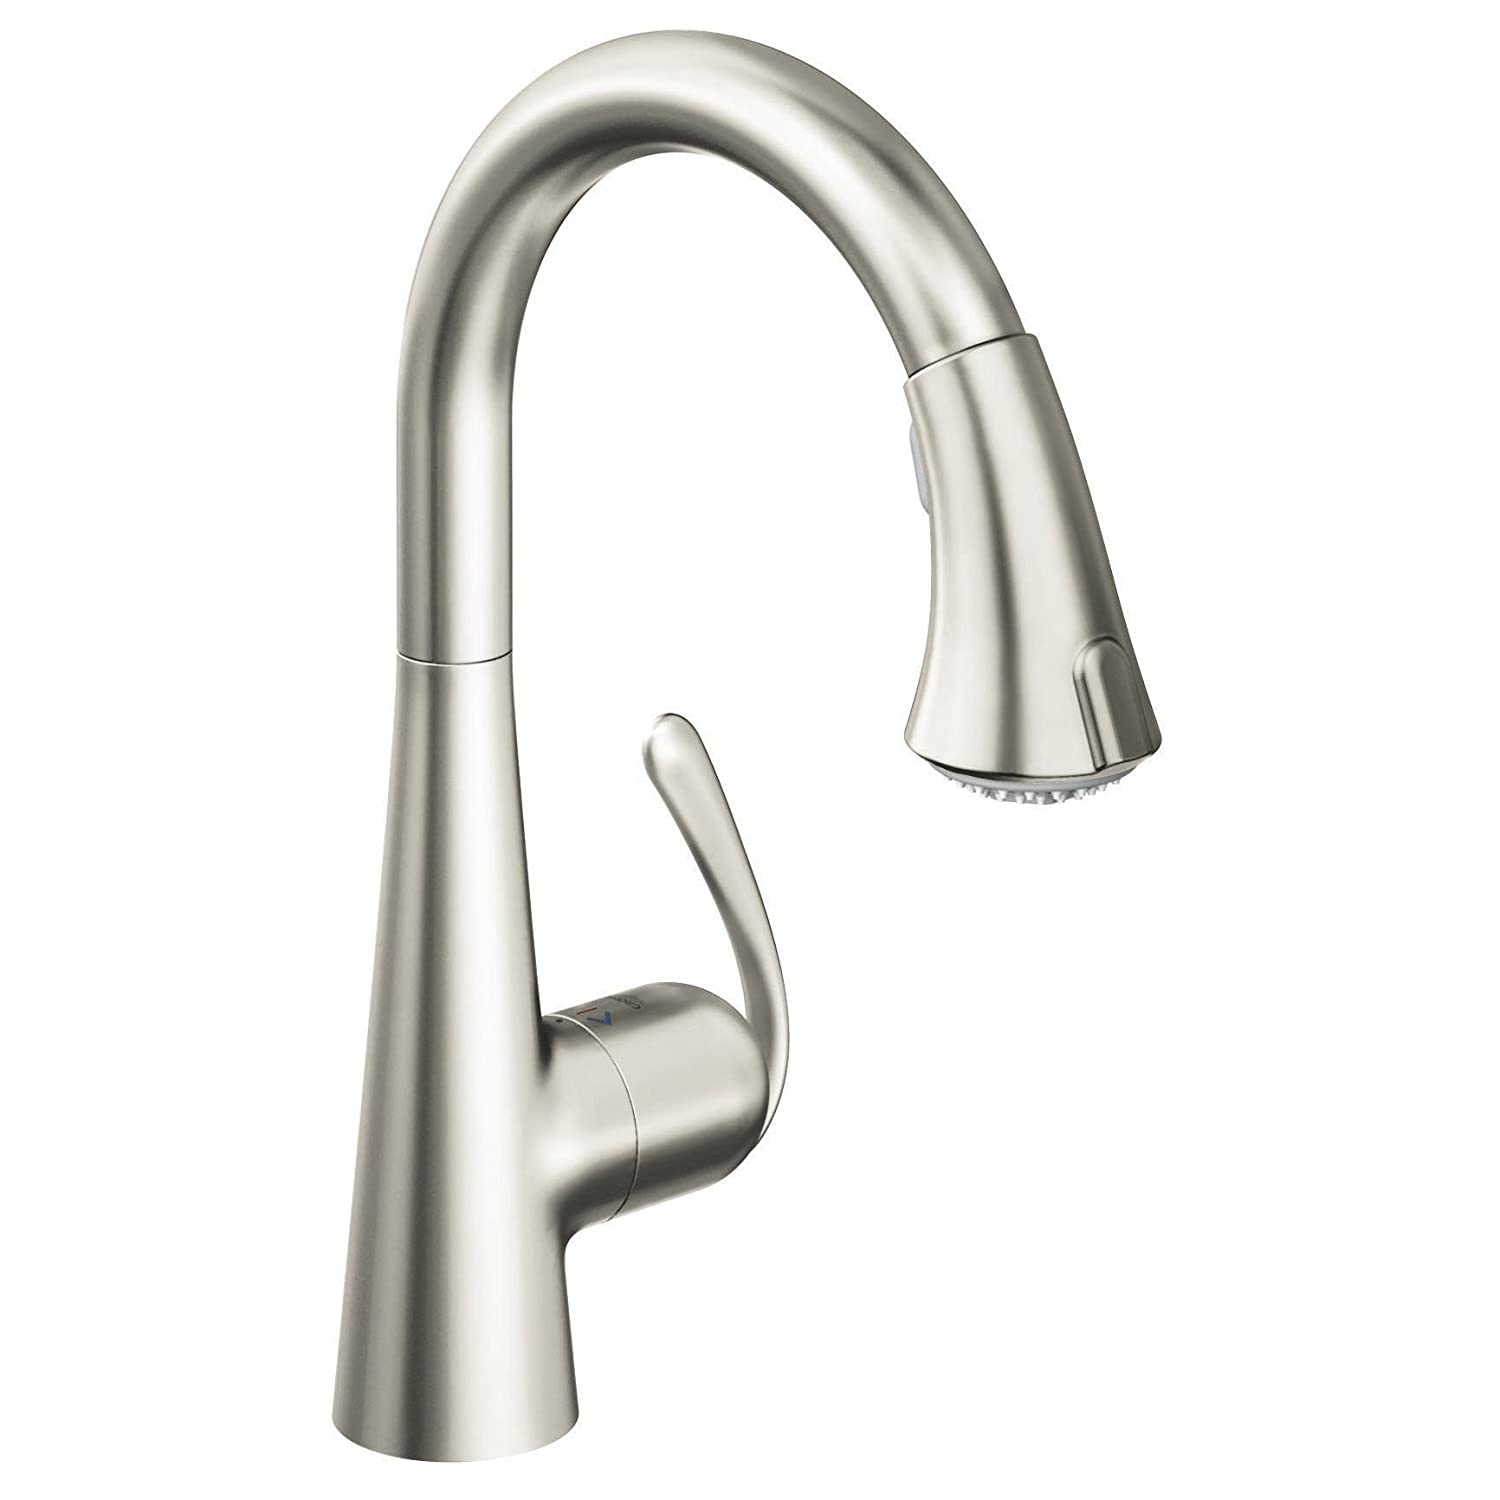 Genial Grohe 32 298 SD0 Ladylux3 Main Sink Dual Spray Pull Down Kitchen Faucet,  RealSteel Stainless Steel   Touch On Kitchen Sink Faucets   Amazon.com